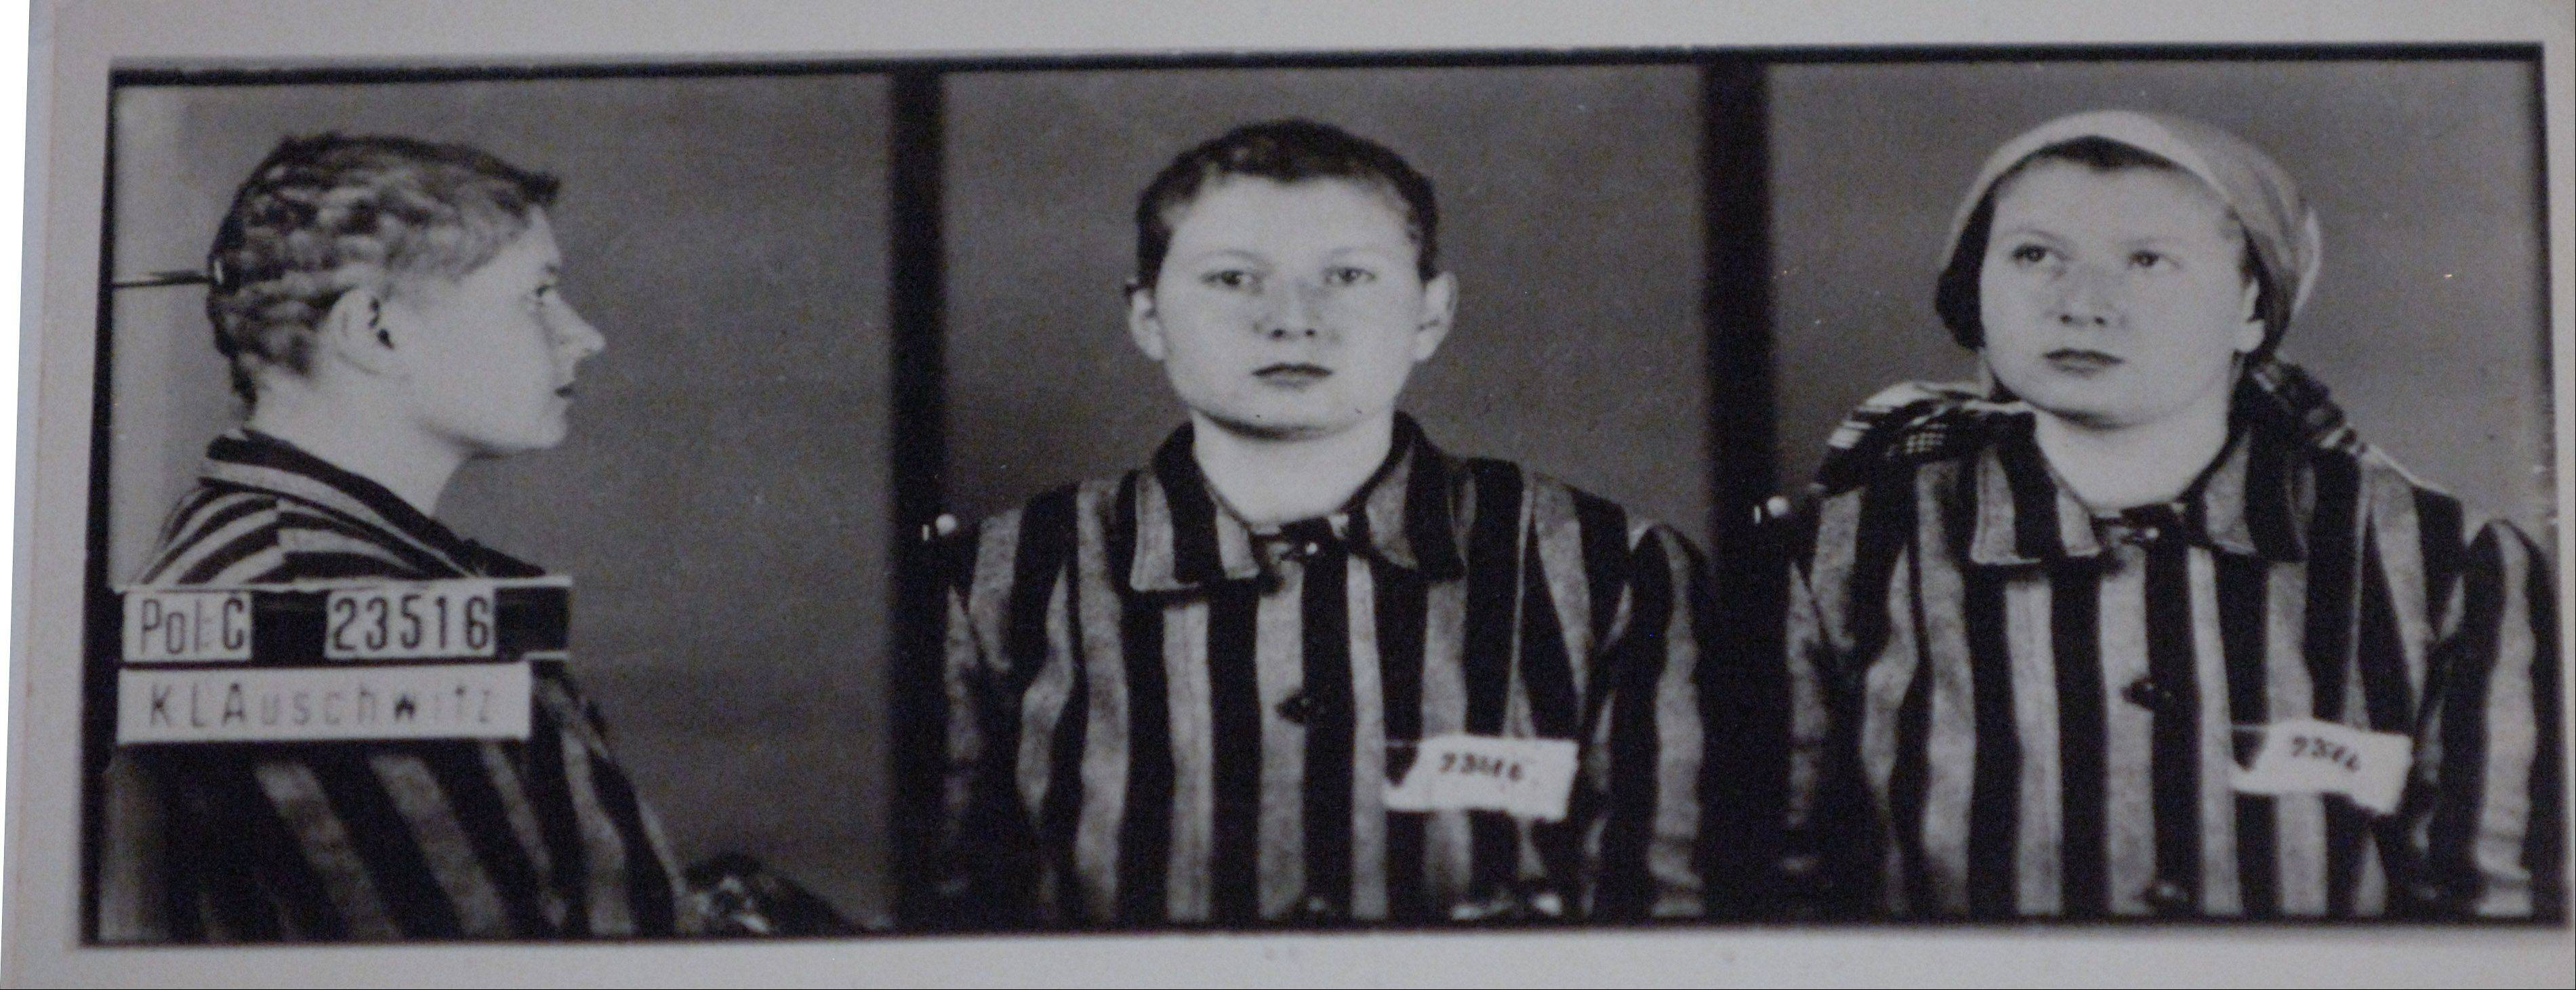 "Photographs of Jaroslava Praglova after having her head shaved, Auschwitz, Poland, ca 1942, part of the ""Women in the Holocaust"" exhibit at the Illinois Holocaust Museum in Skokie."